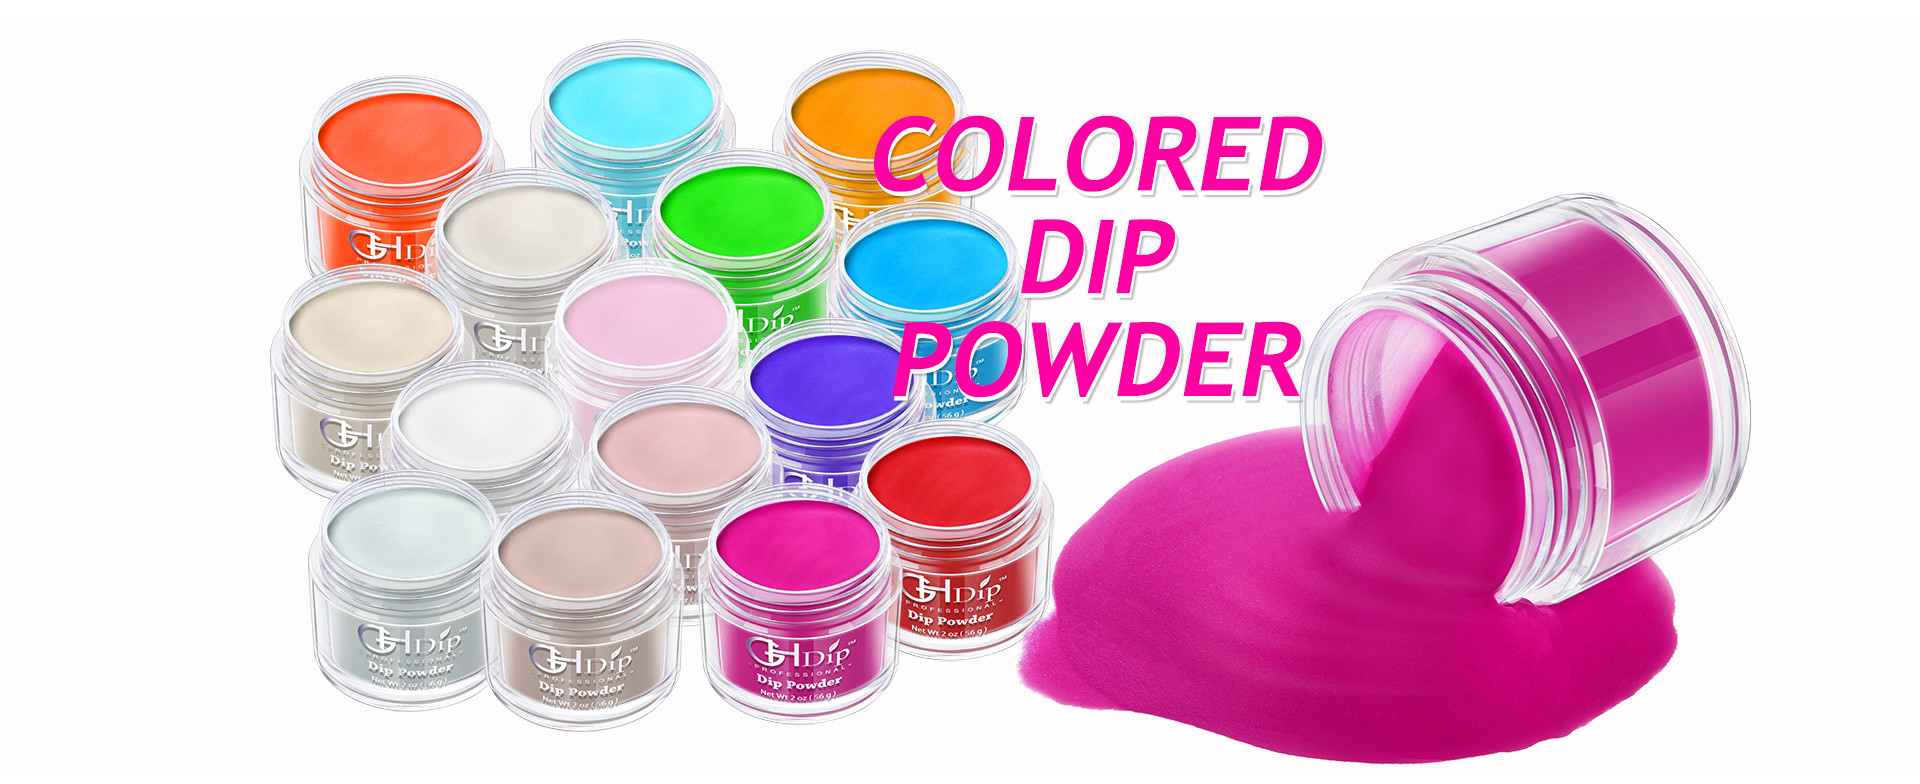 Dip Powder Colors